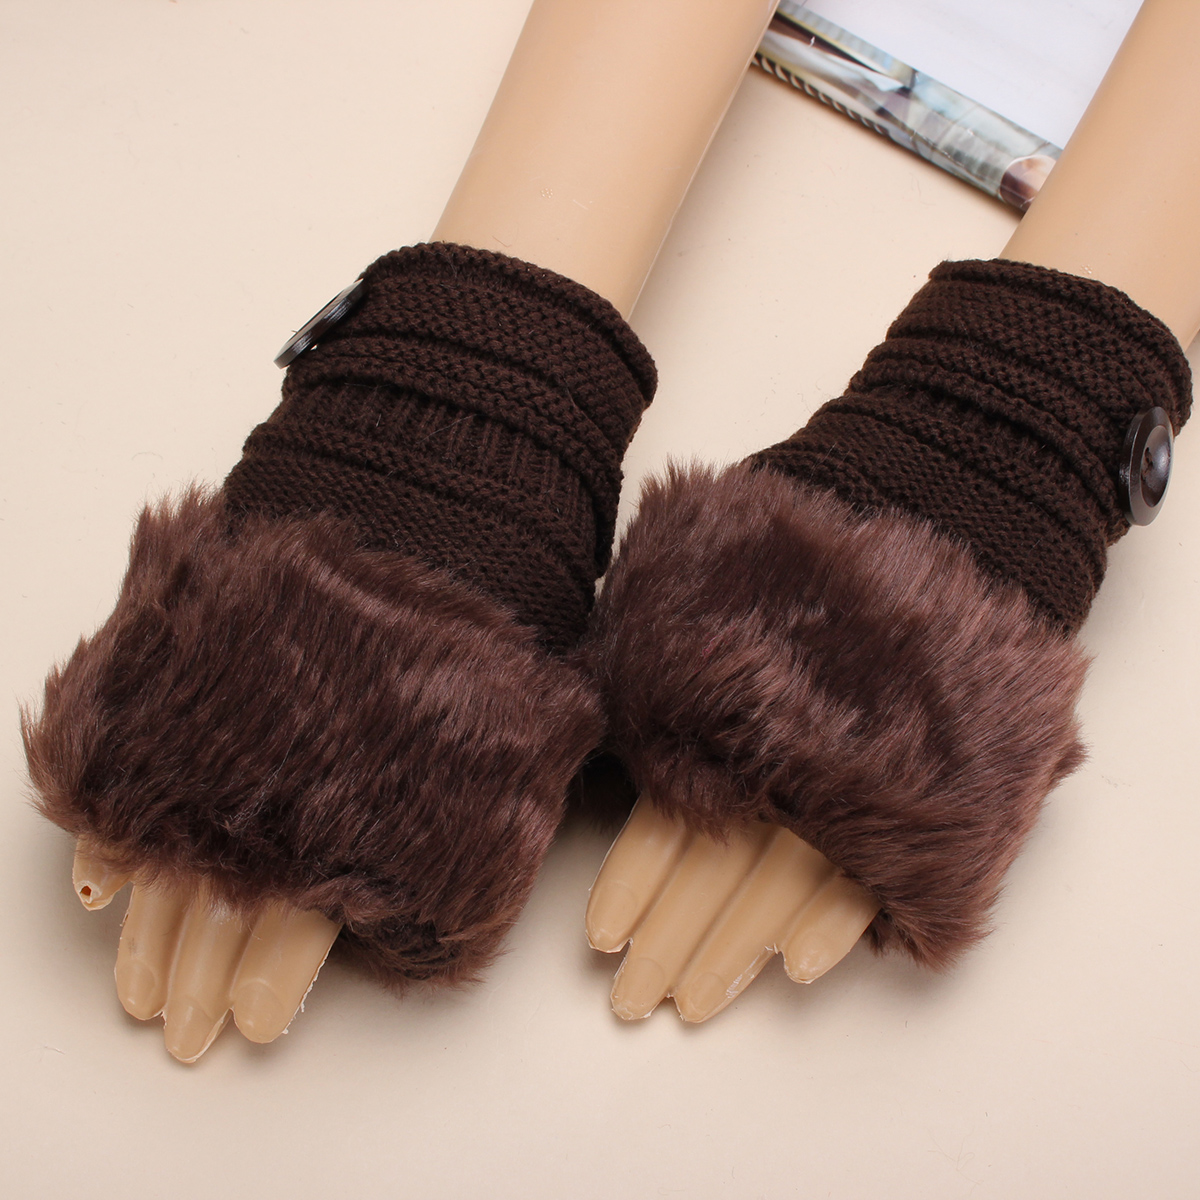 Women Ladies Crochet Knitted Fingerless Gloves Button Decorative Fur Mittens